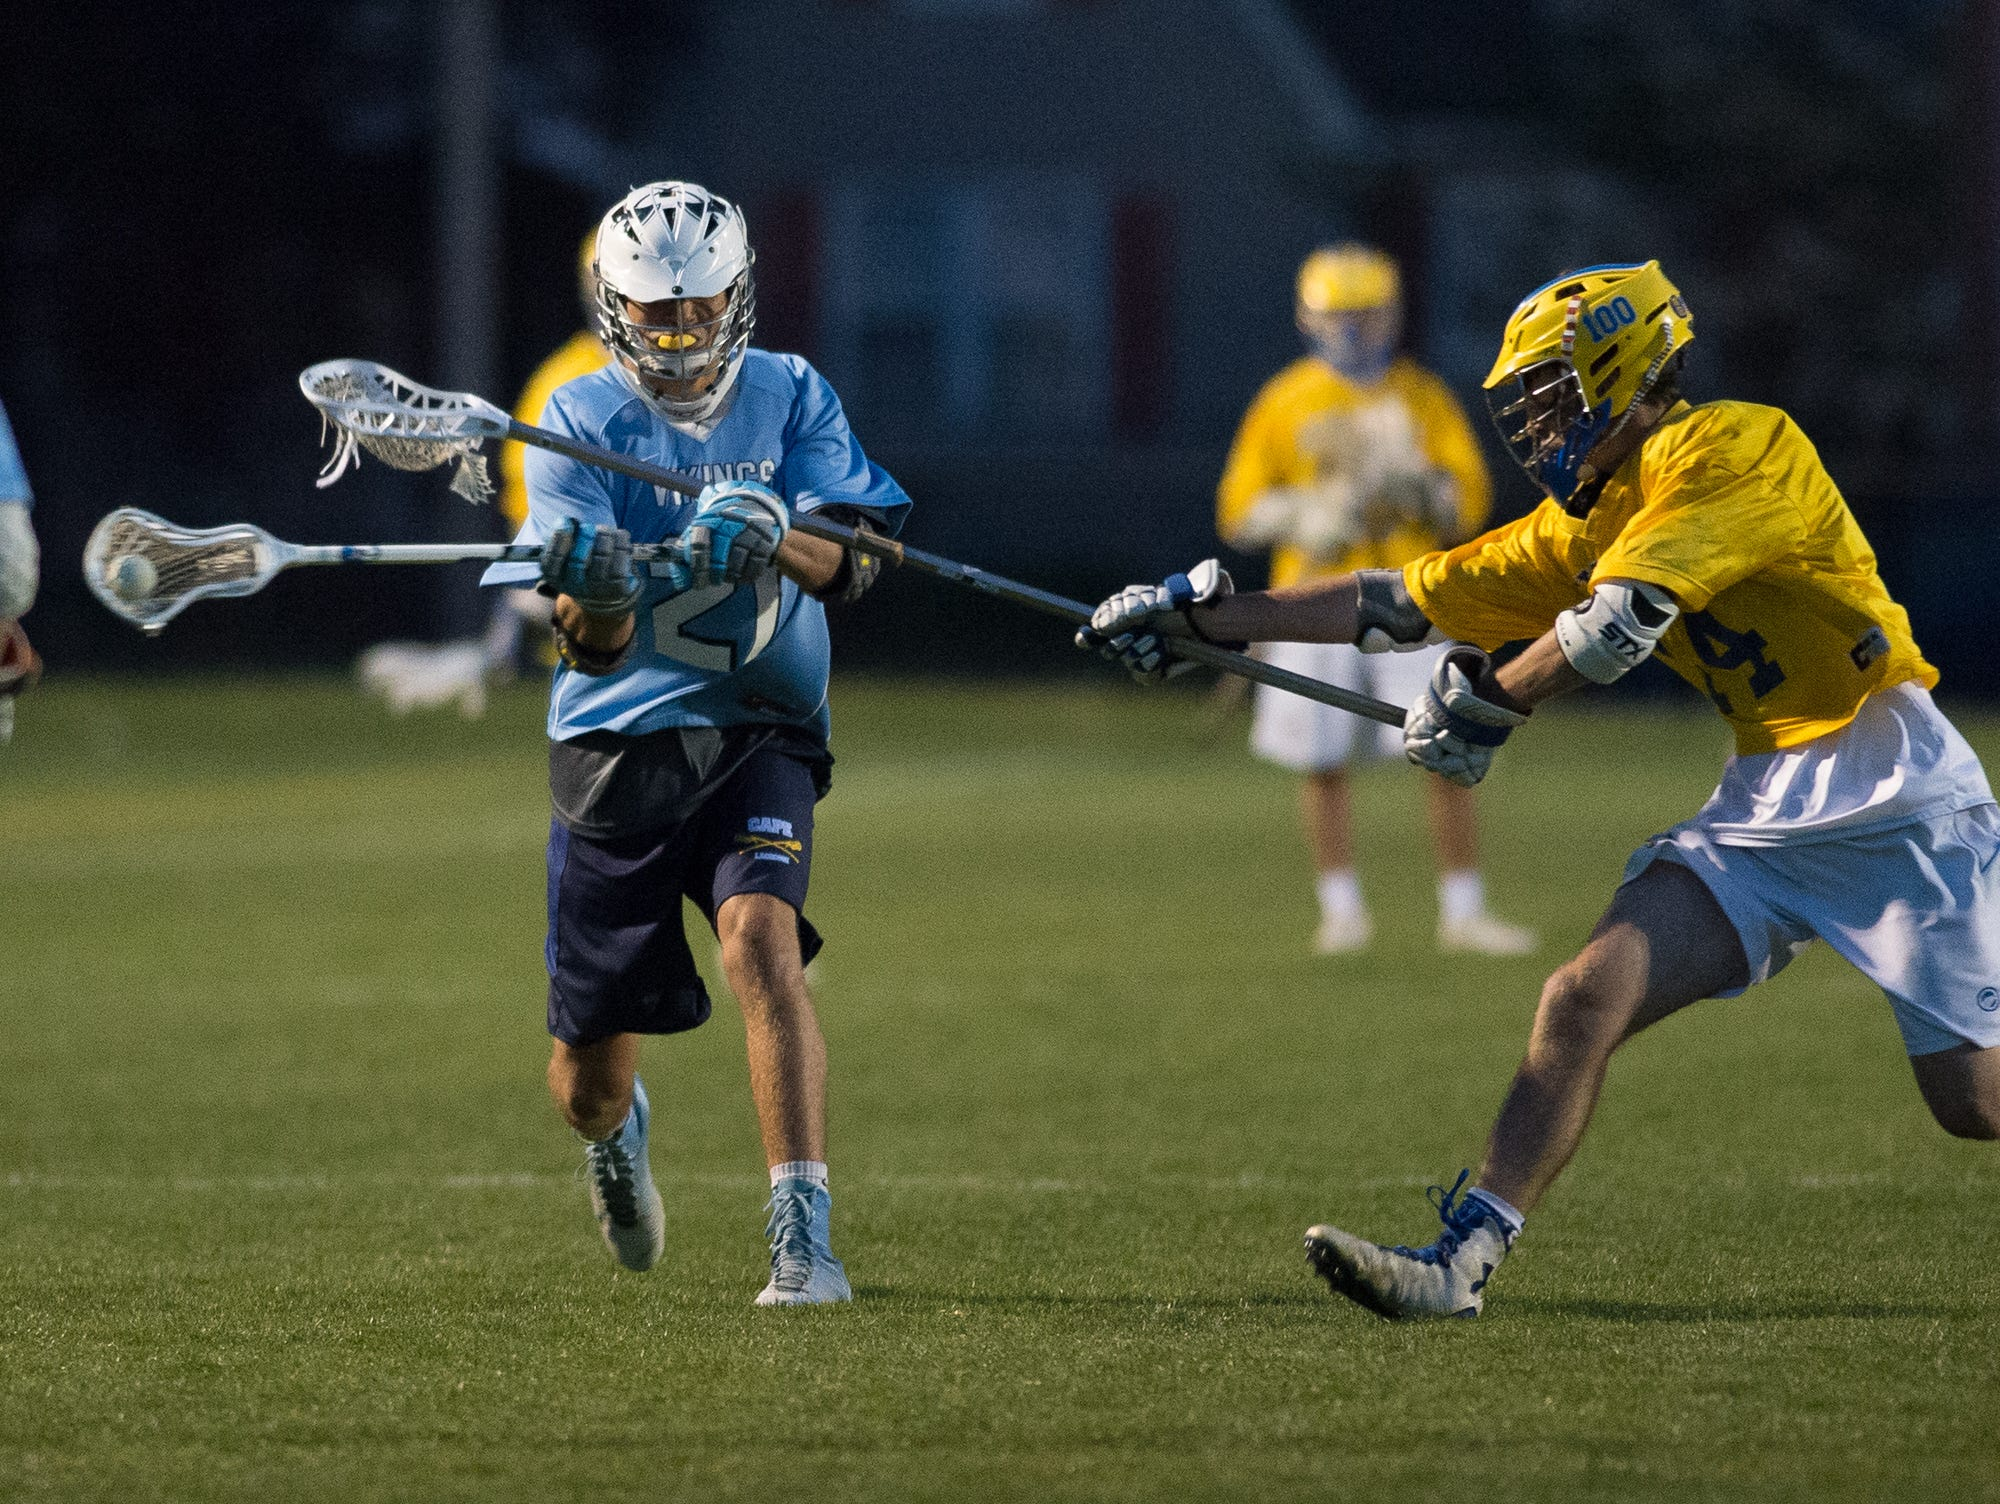 Cape Henlopen's Brock Maloomian (21) with a shot on goal in their game against Caesar Rodney.